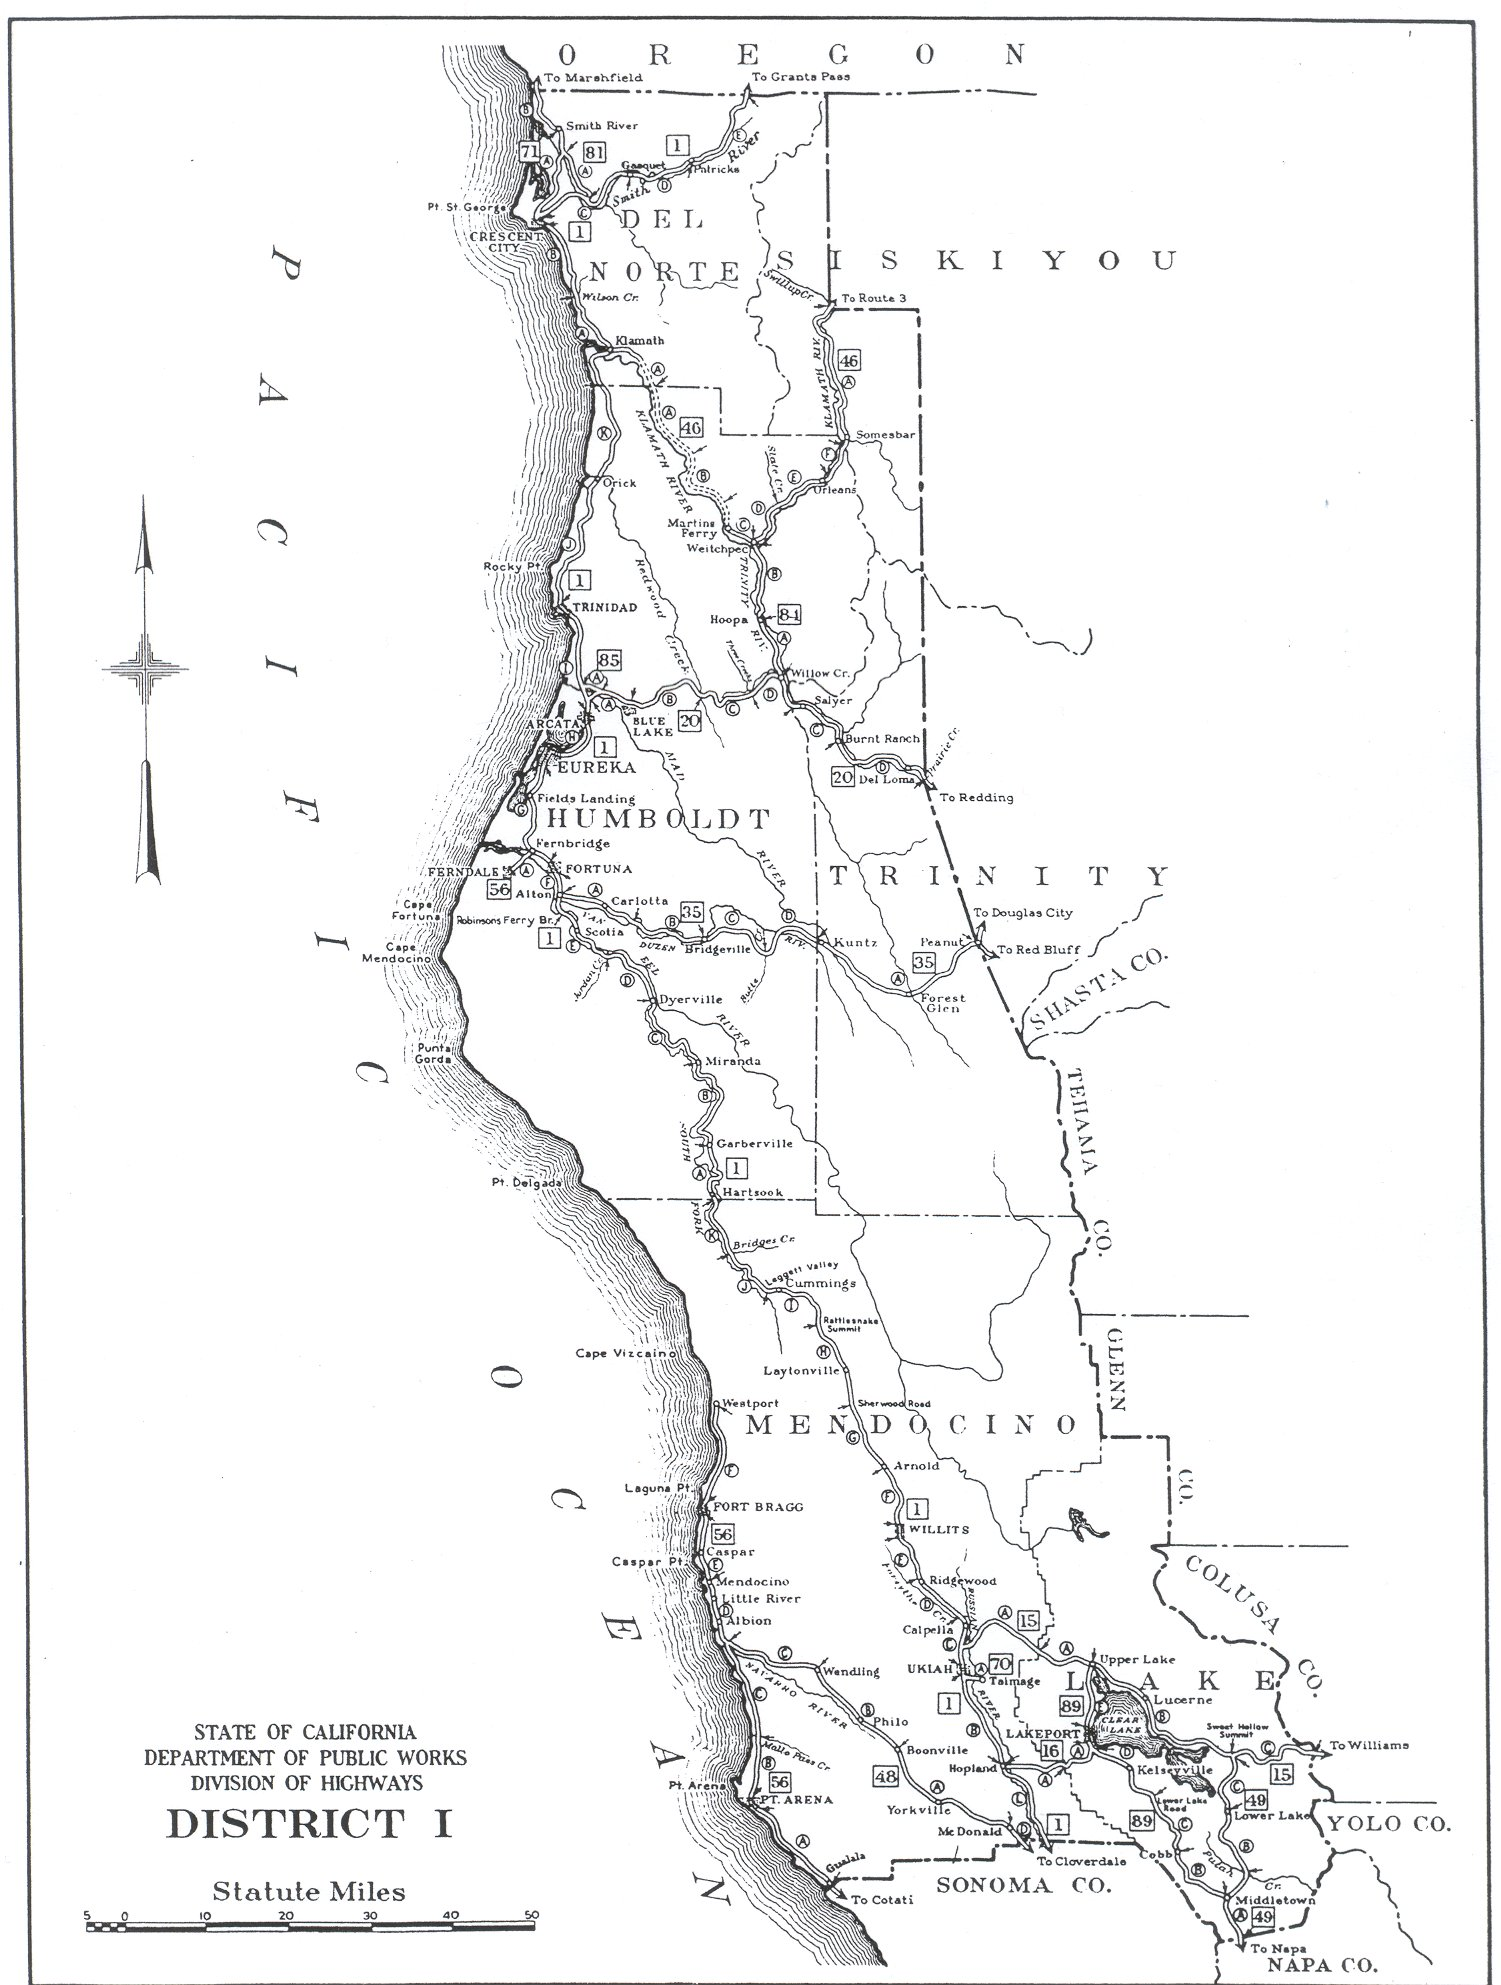 California Division Of Highways District Maps Caltrans - Map of california highways